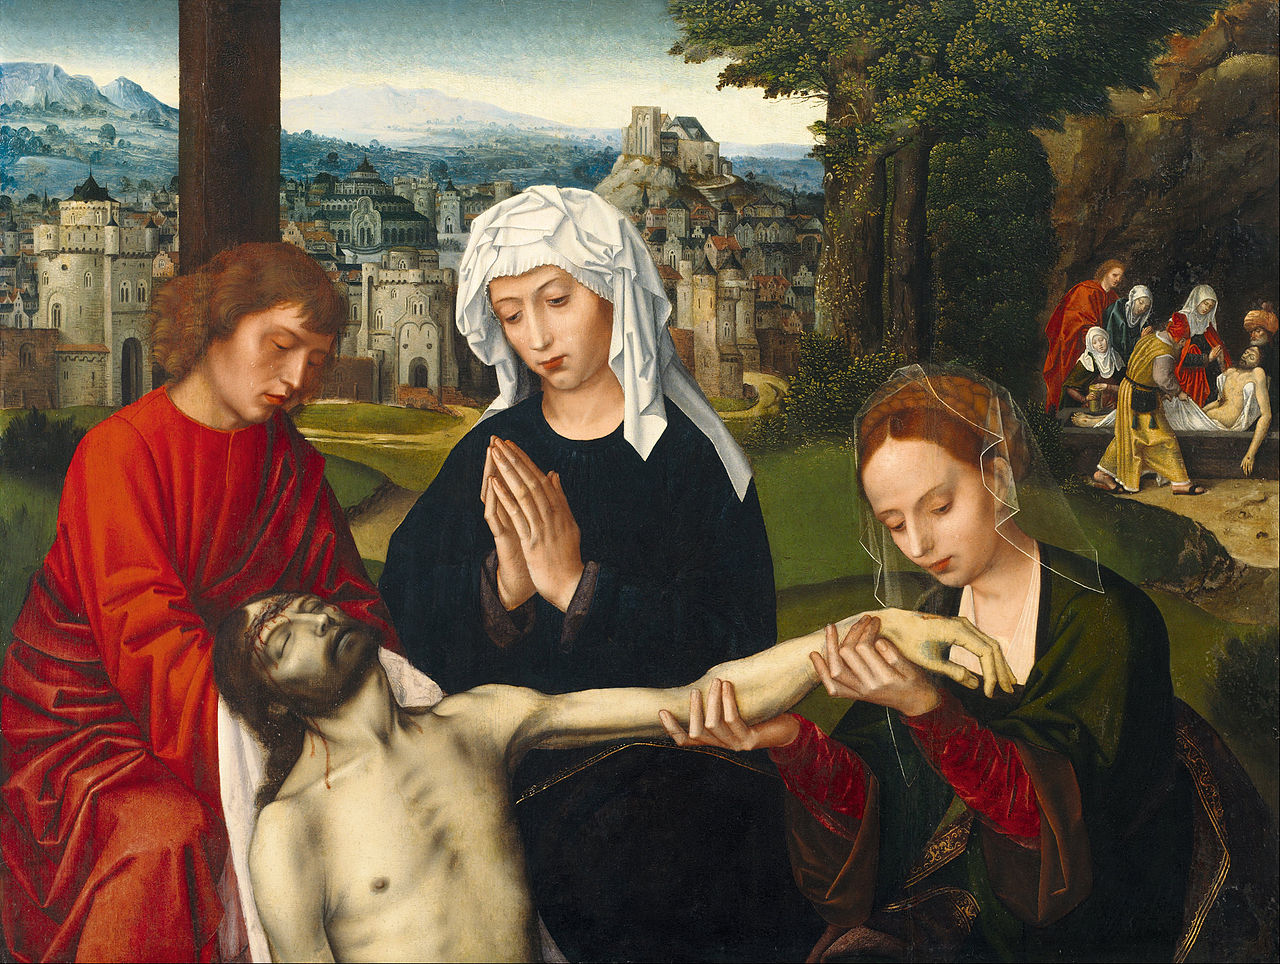 https://upload.wikimedia.org/wikipedia/commons/thumb/2/2f/Ambrosius_Benson_-_Piet%C3%A0_at_the_Foot_of_the_Cross_-_Google_Art_Project.jpg/1280px-Ambrosius_Benson_-_Piet%C3%A0_at_the_Foot_of_the_Cross_-_Google_Art_Project.jpg